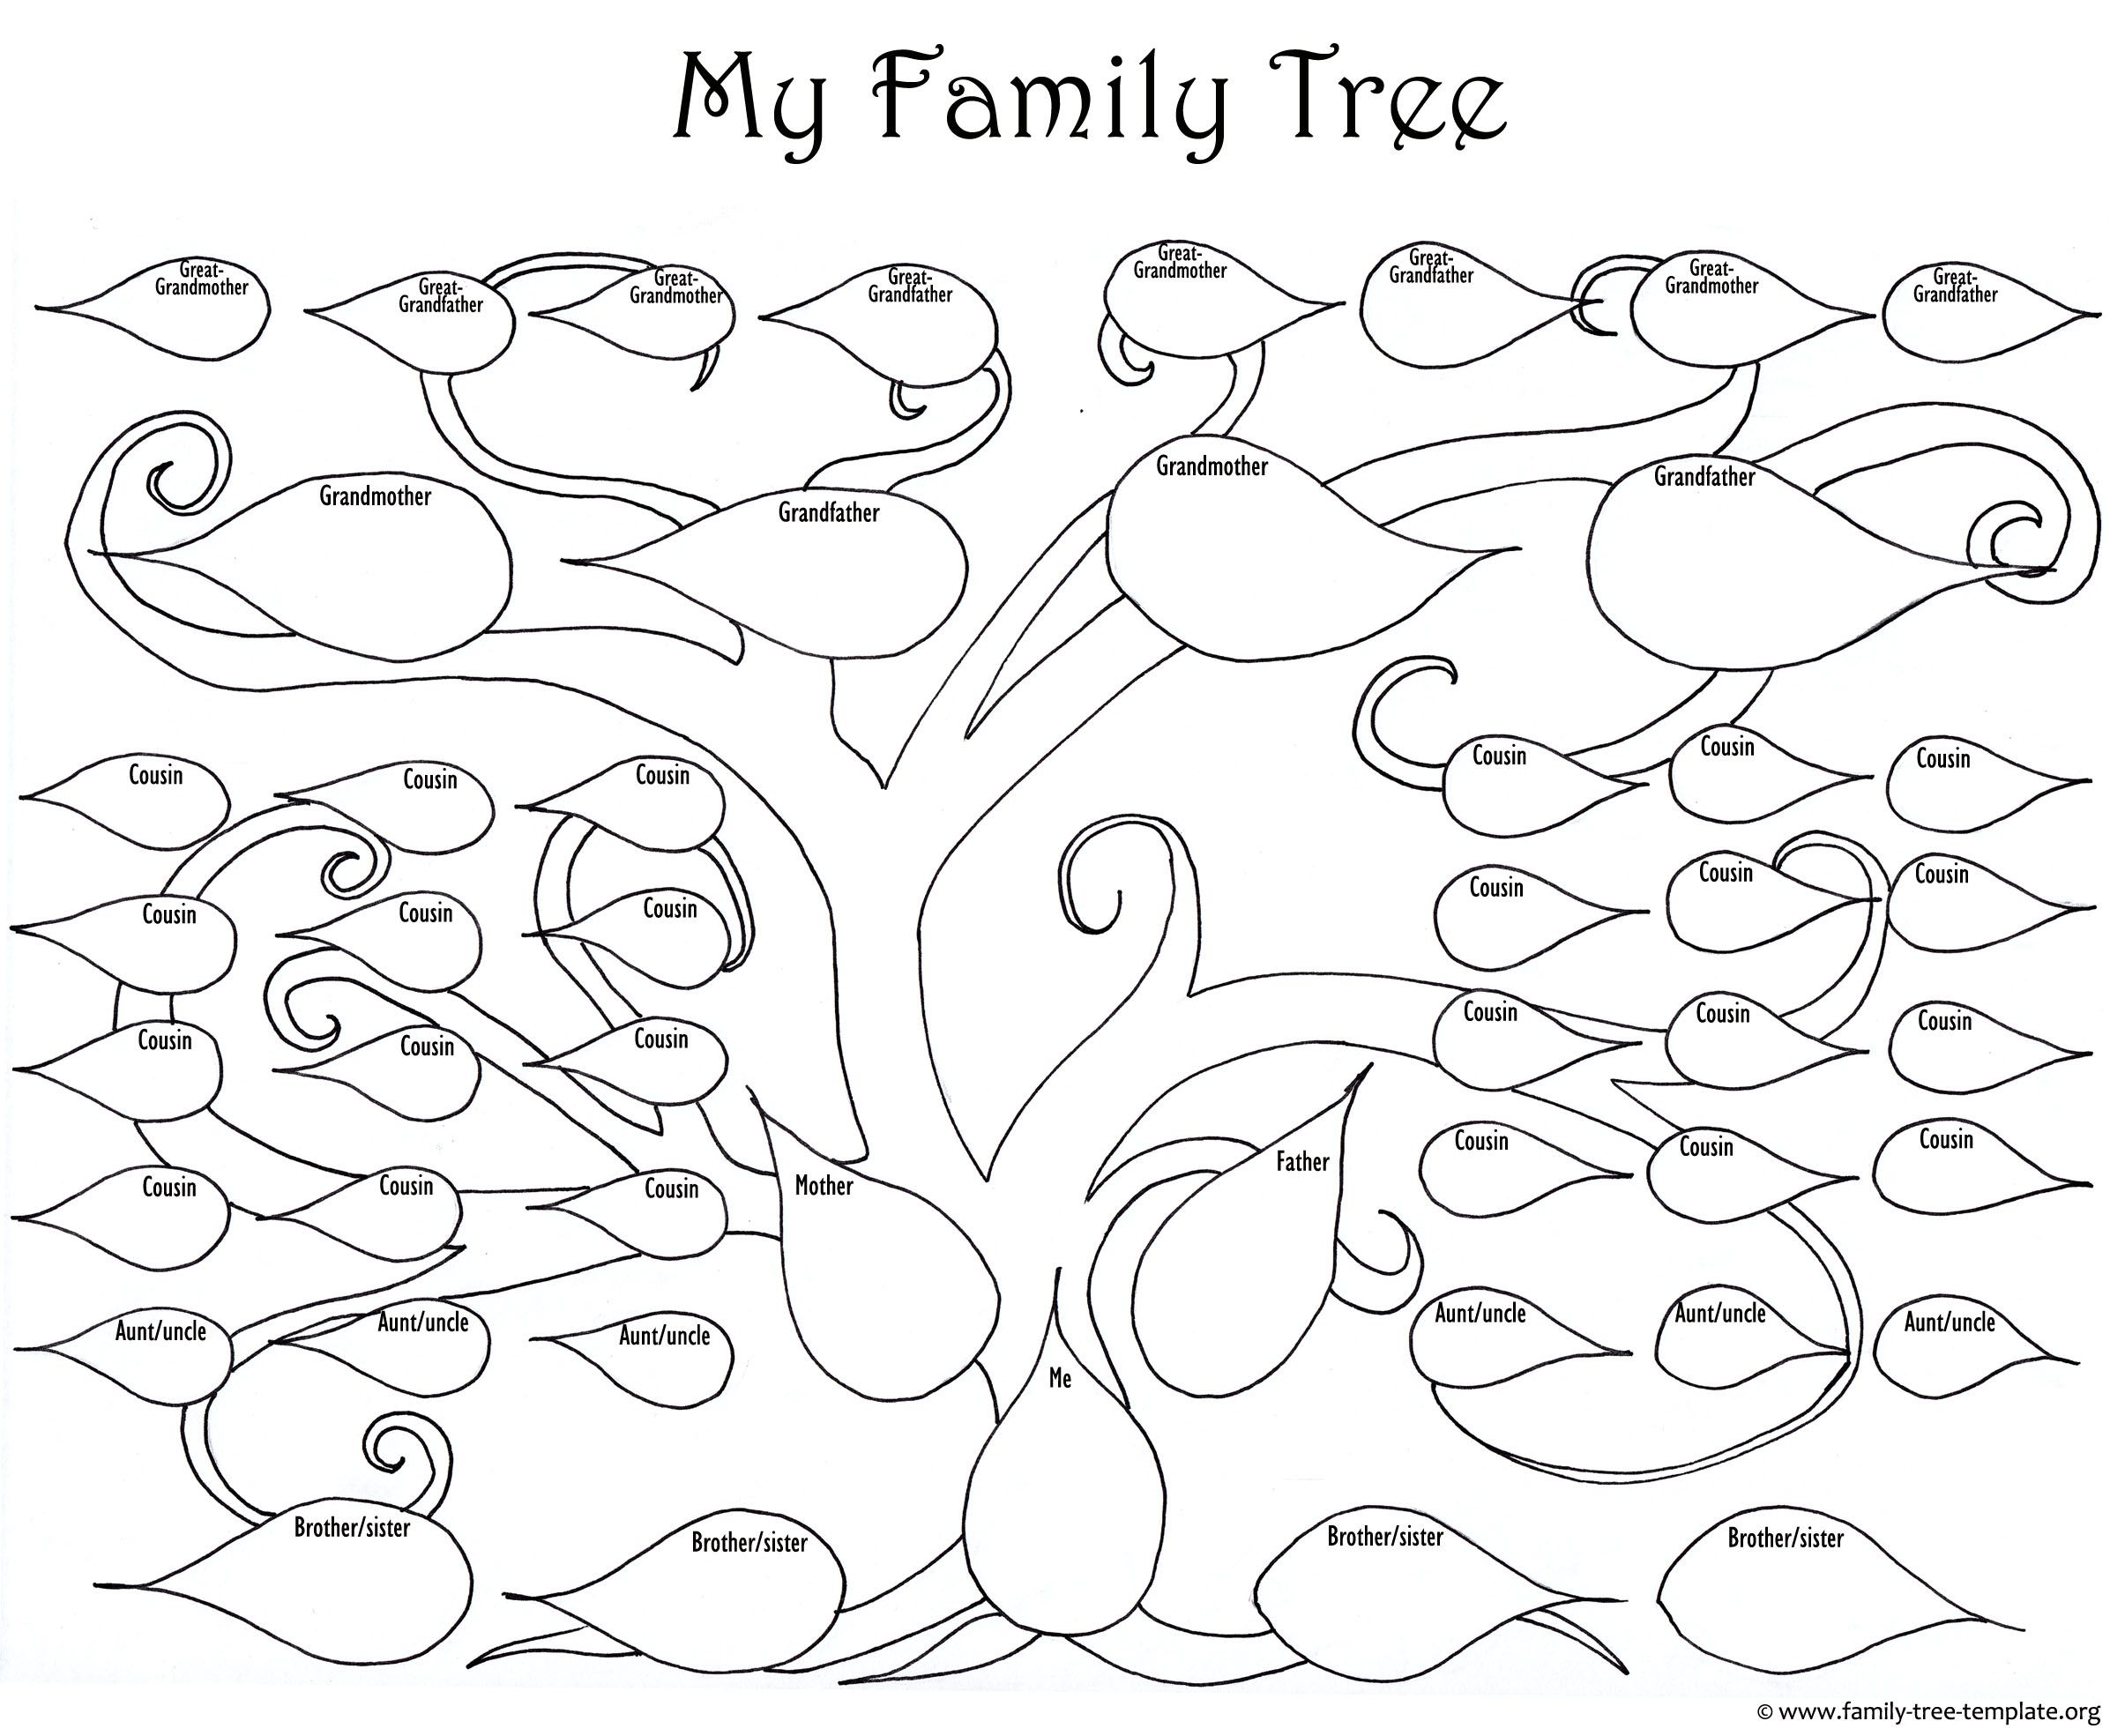 2393x1969 The Big Printable Family Tree As A Fun Coloring Page For Kids